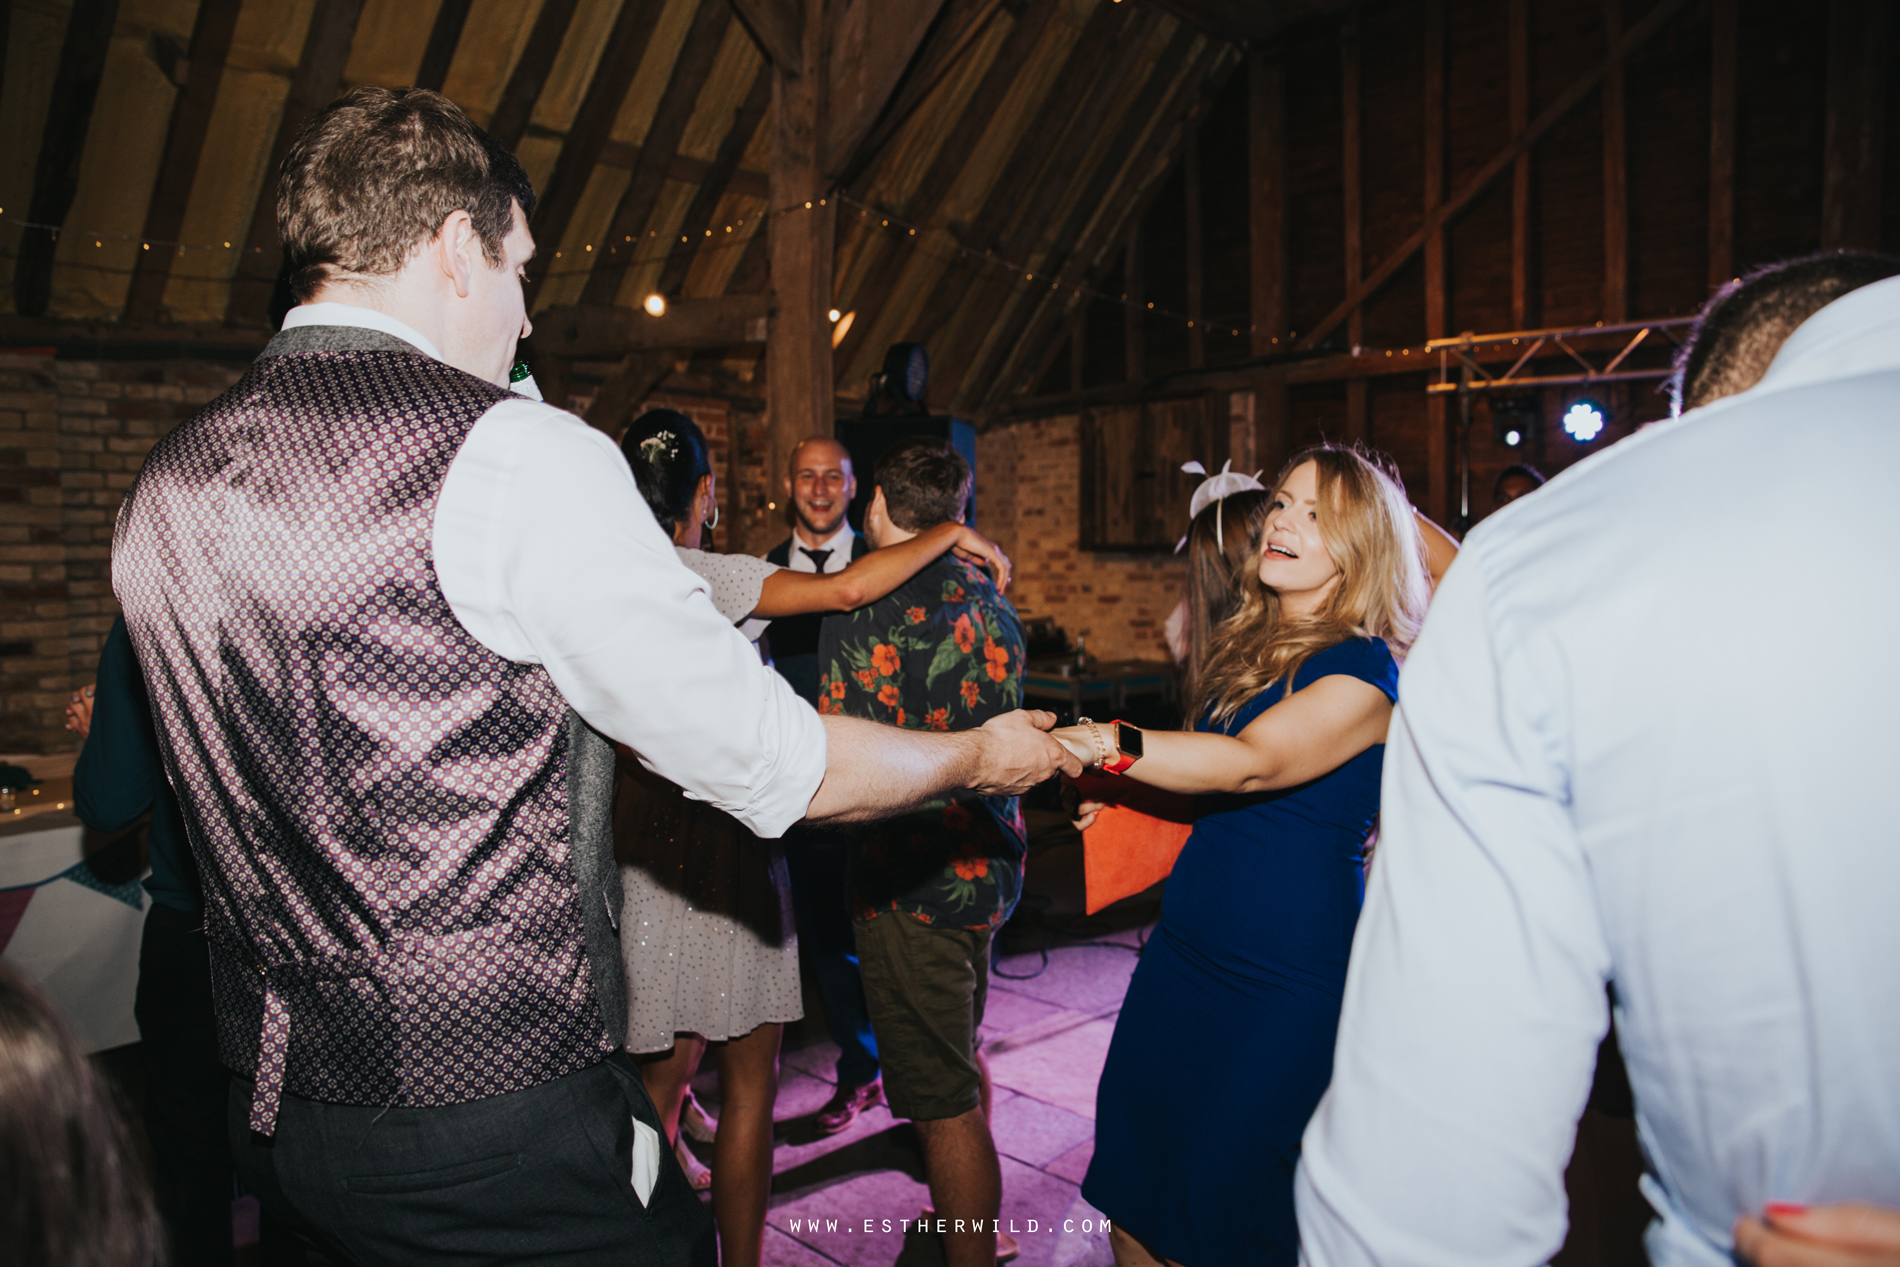 The_Red_Barn_Wedding_Kings_Lynn_Norfolk_IMG_3080.jpg